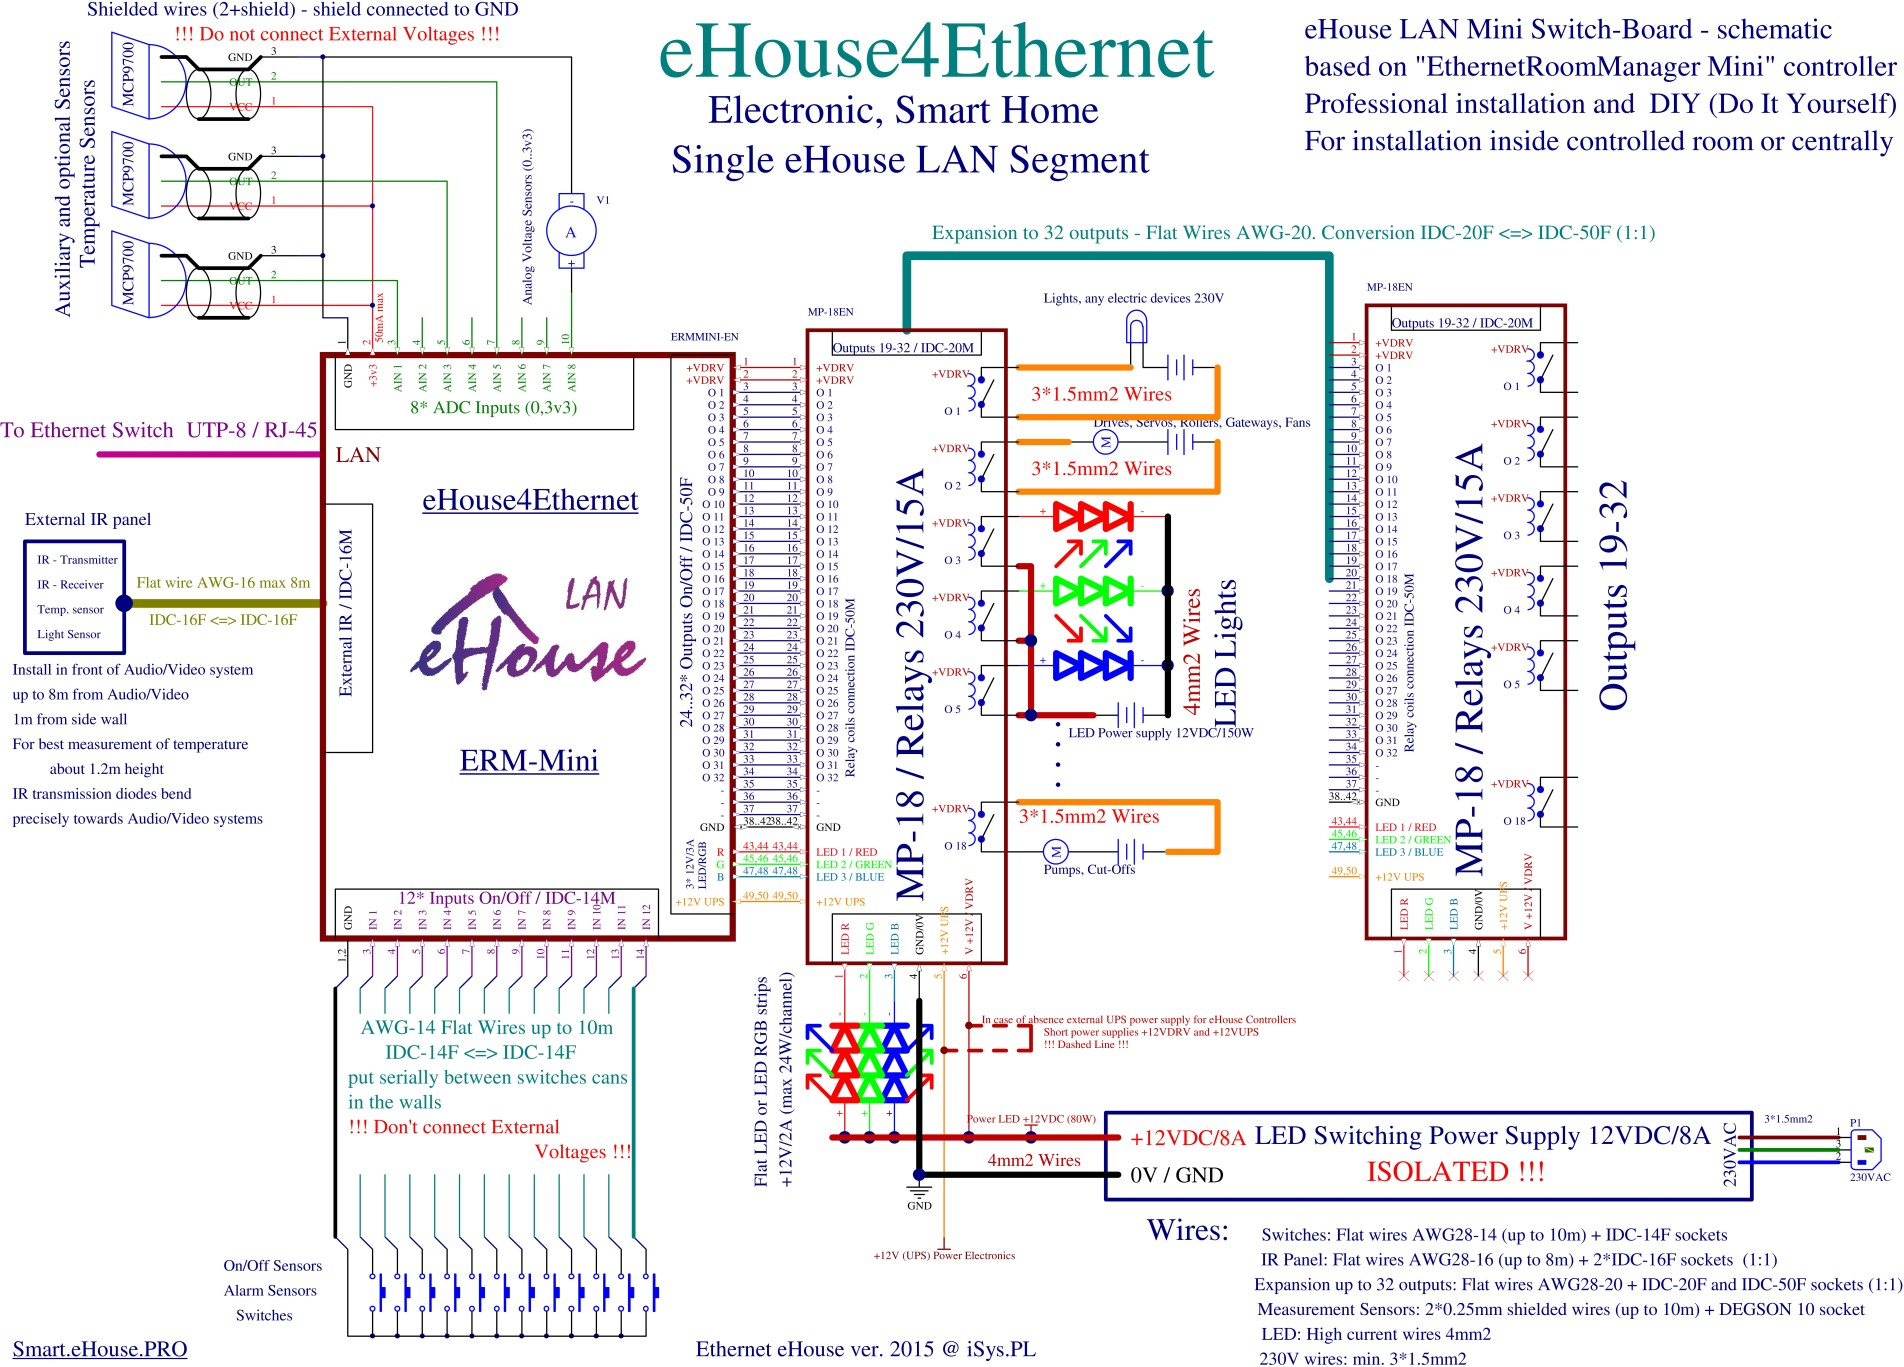 ermmini en new home wiring diagram dolgular com new home wiring diagram at gsmportal.co